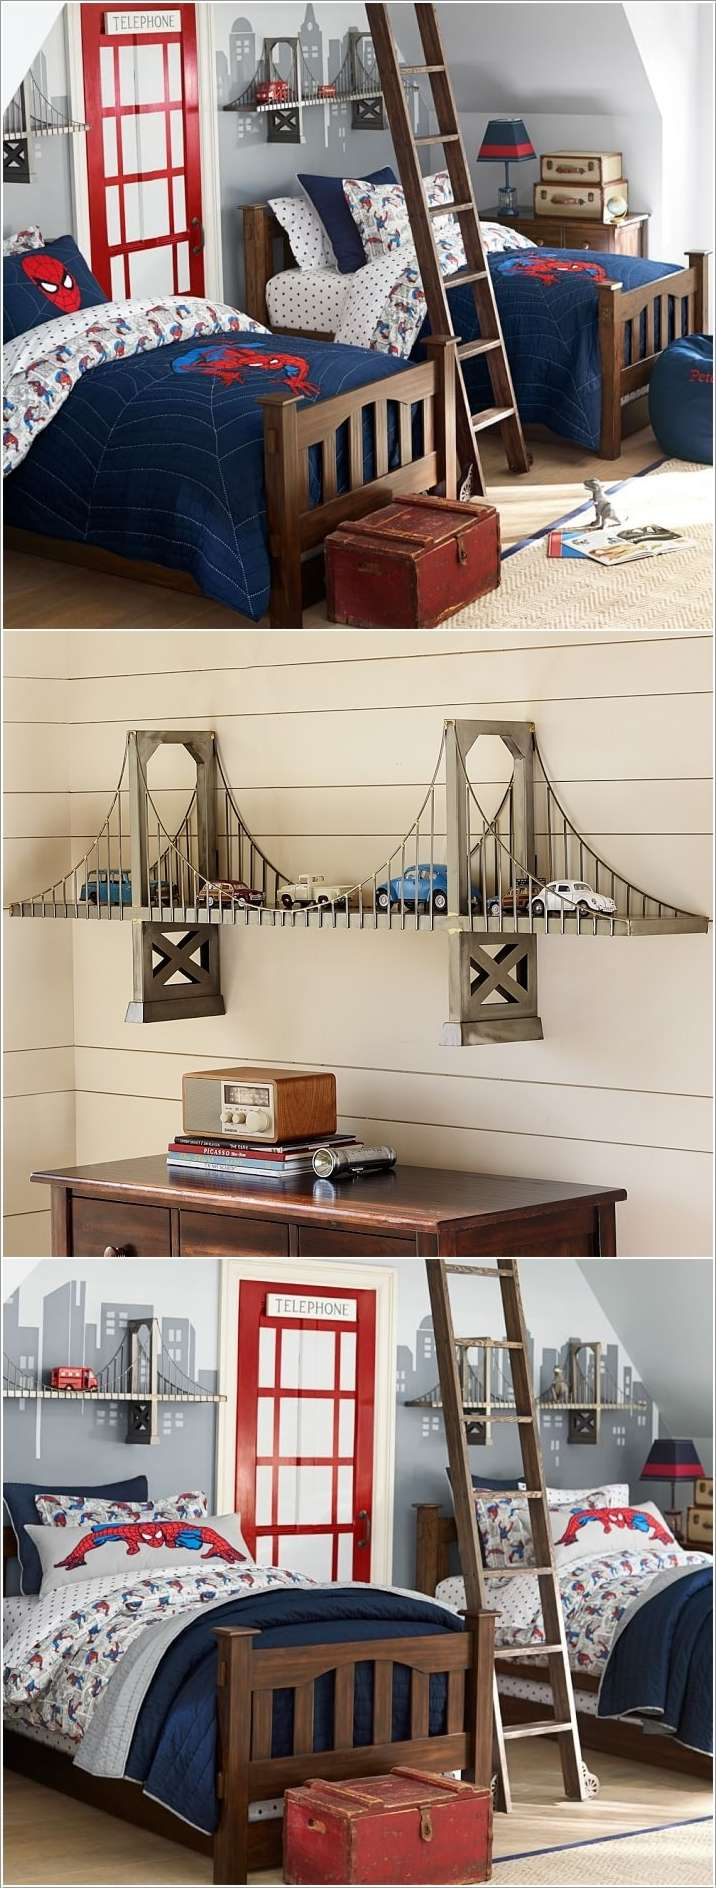 9  15 Cool and Fun Ideas for Your Kids' Room 91